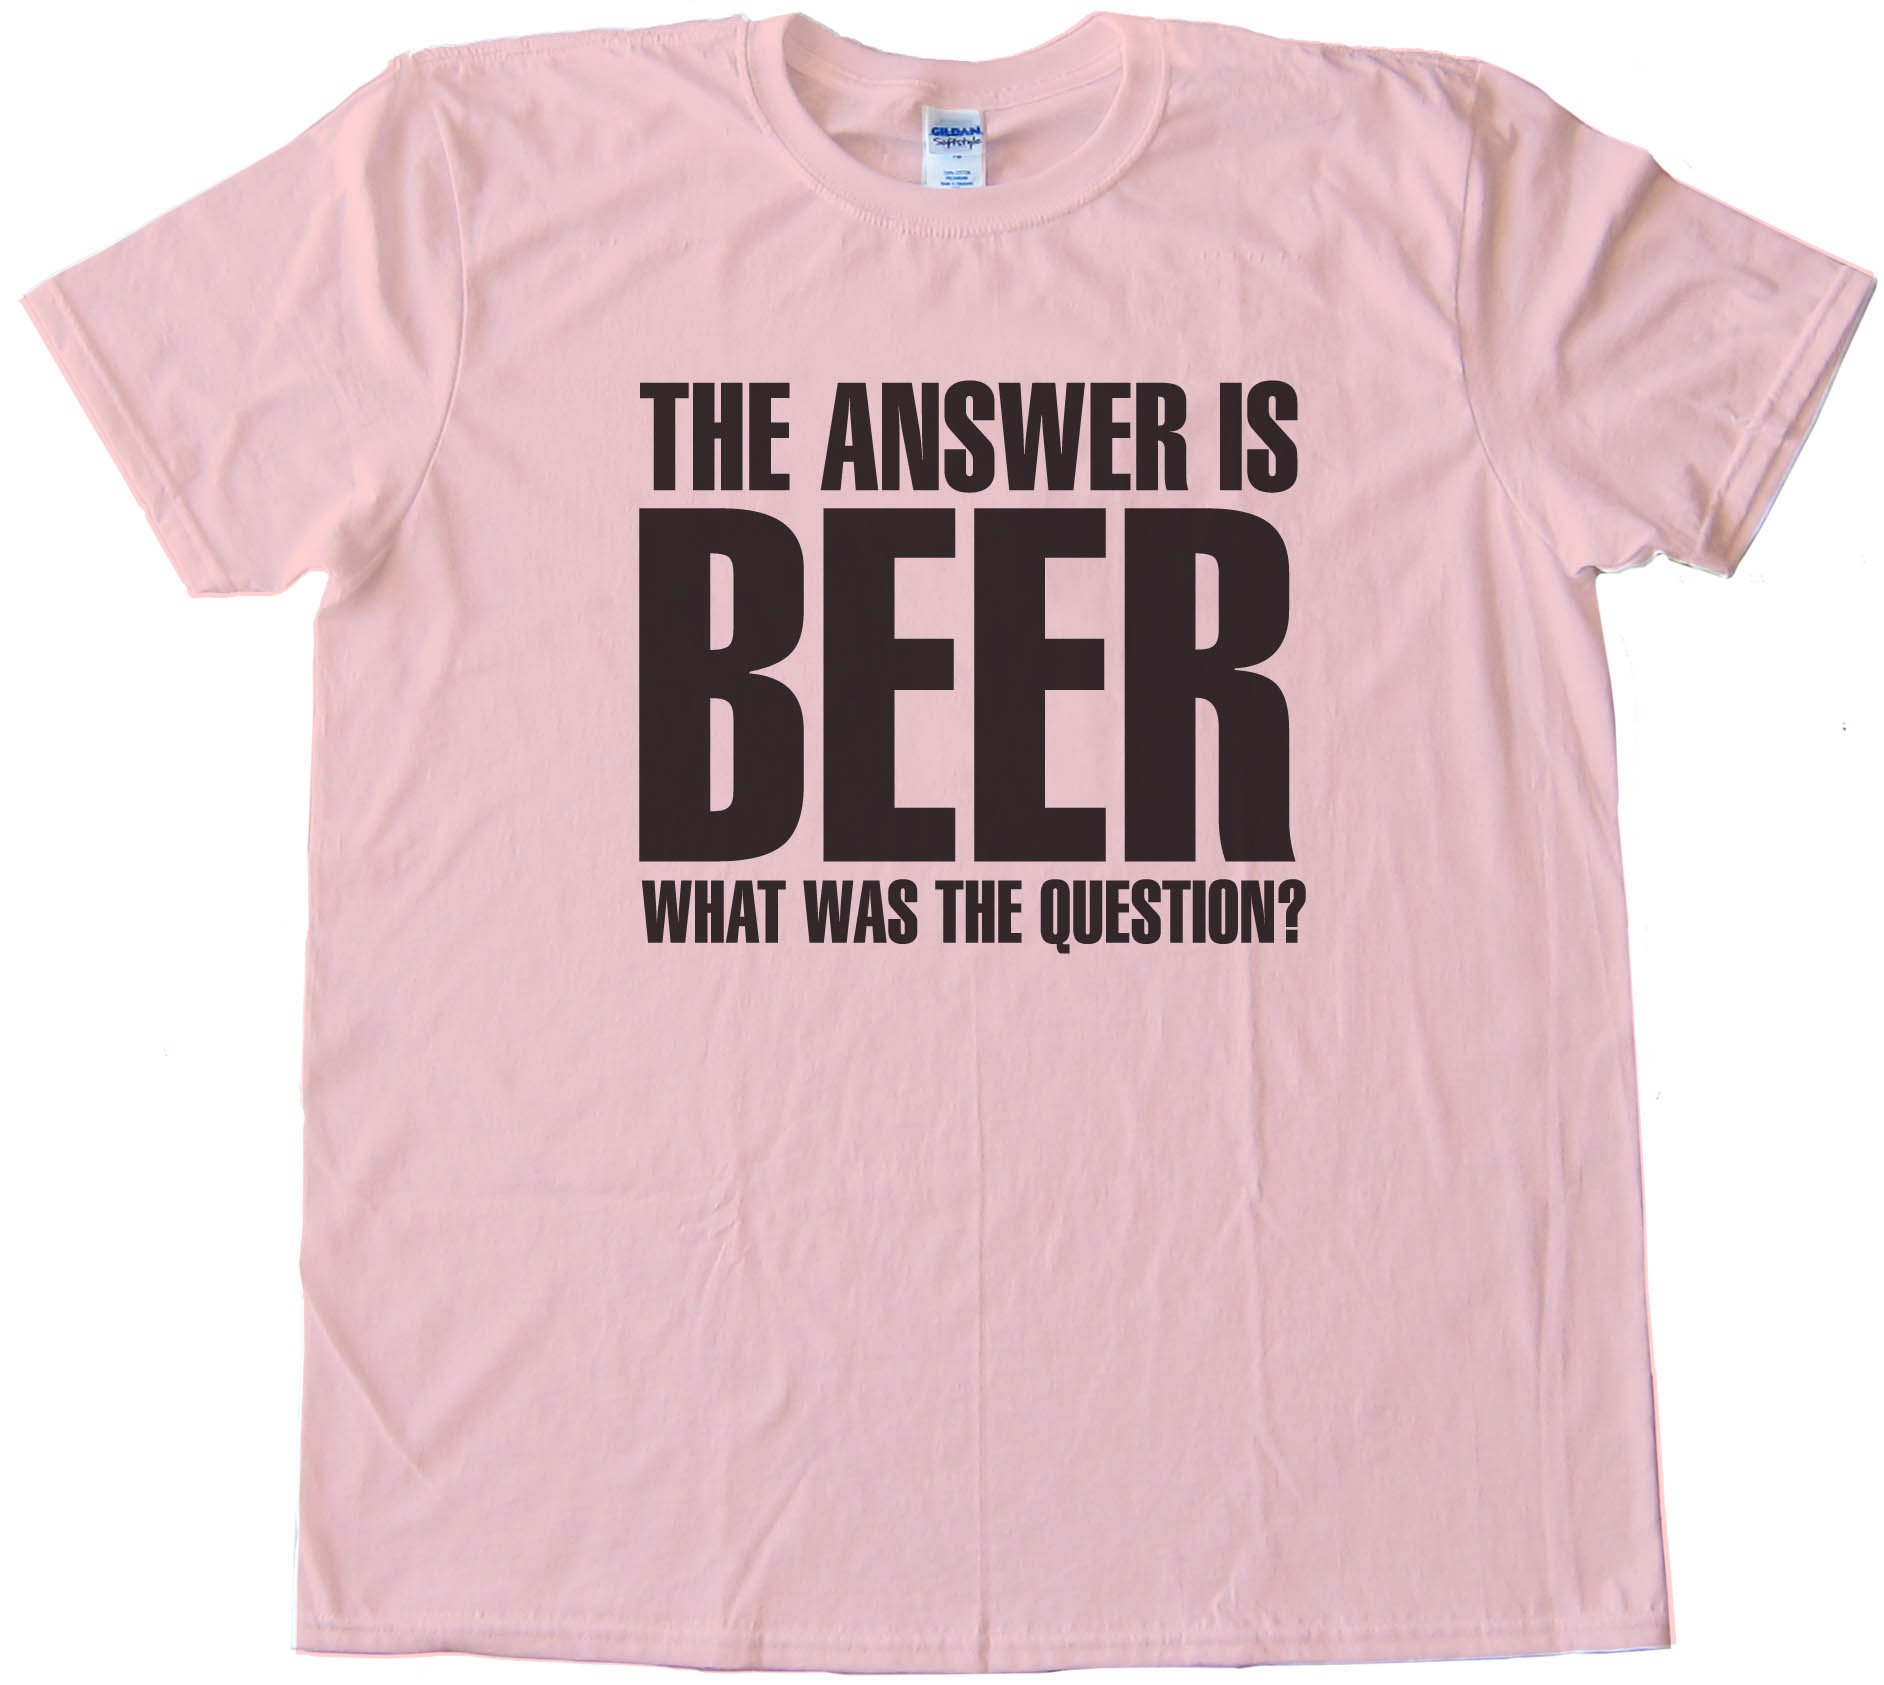 The Answer Is Beer - What Was The Question? - Tee Shirt